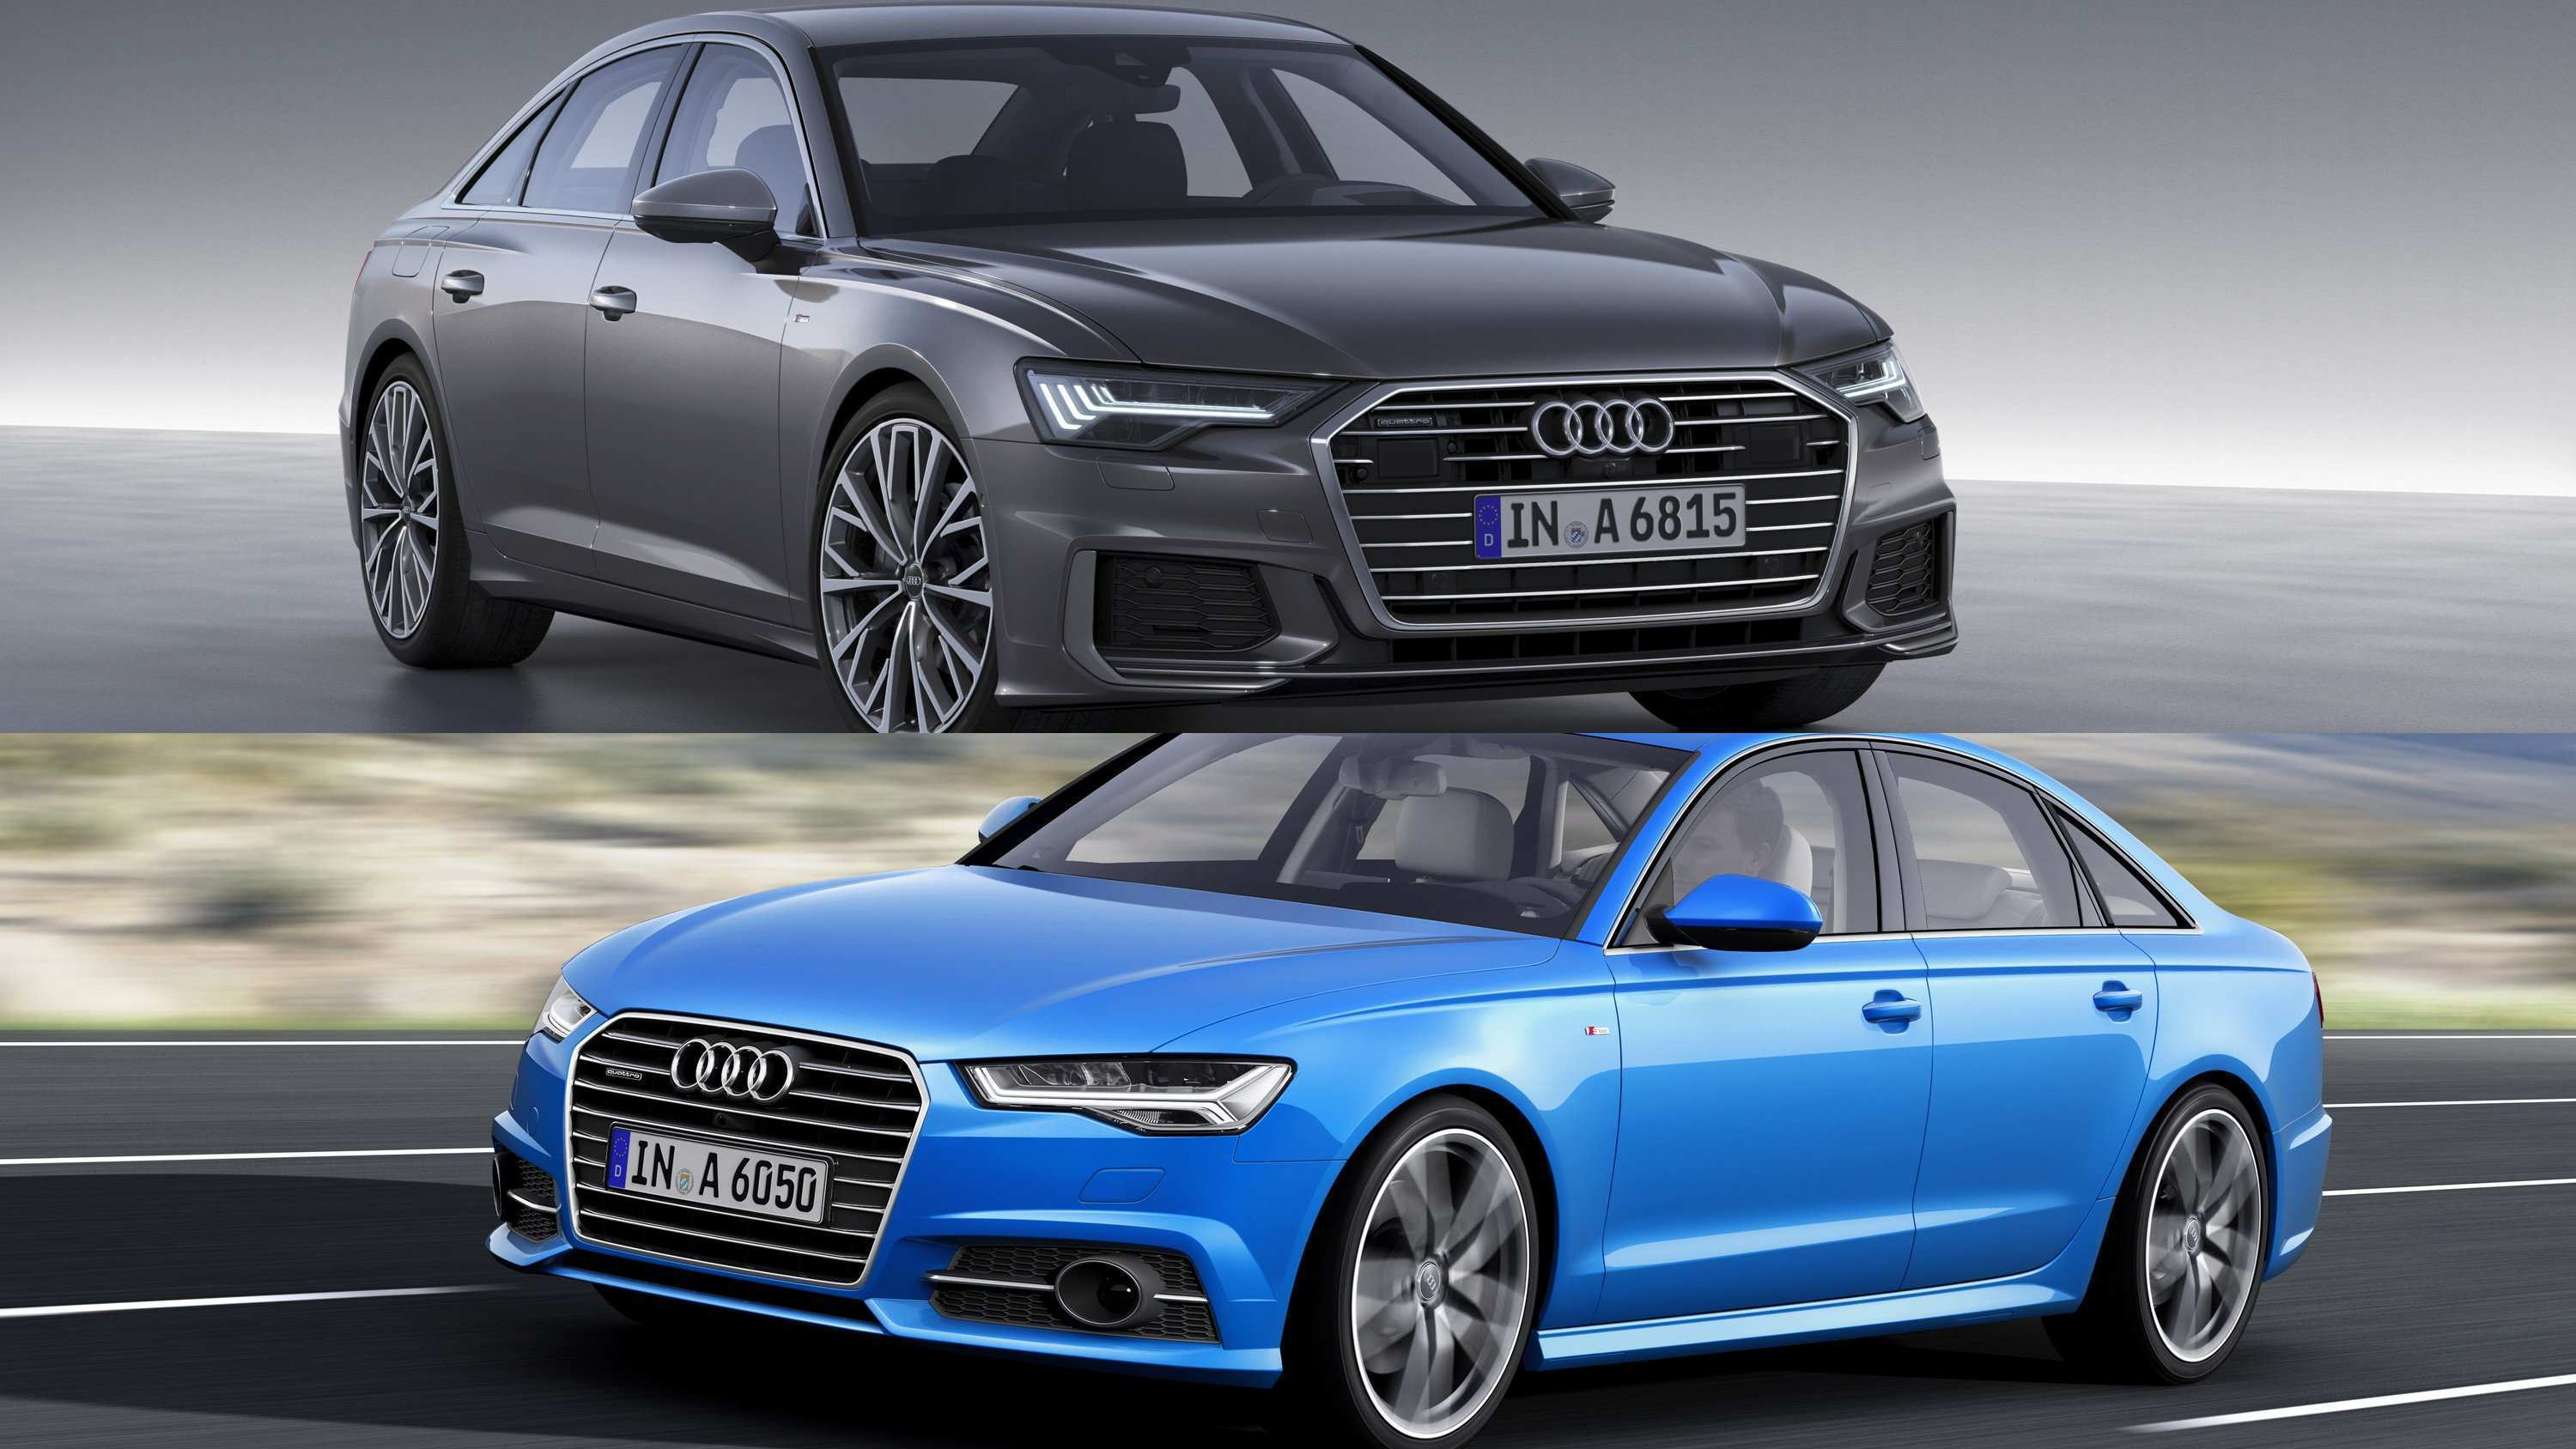 29 Best Review The Q4 Audi 2019 Specs Model by The Q4 Audi 2019 Specs